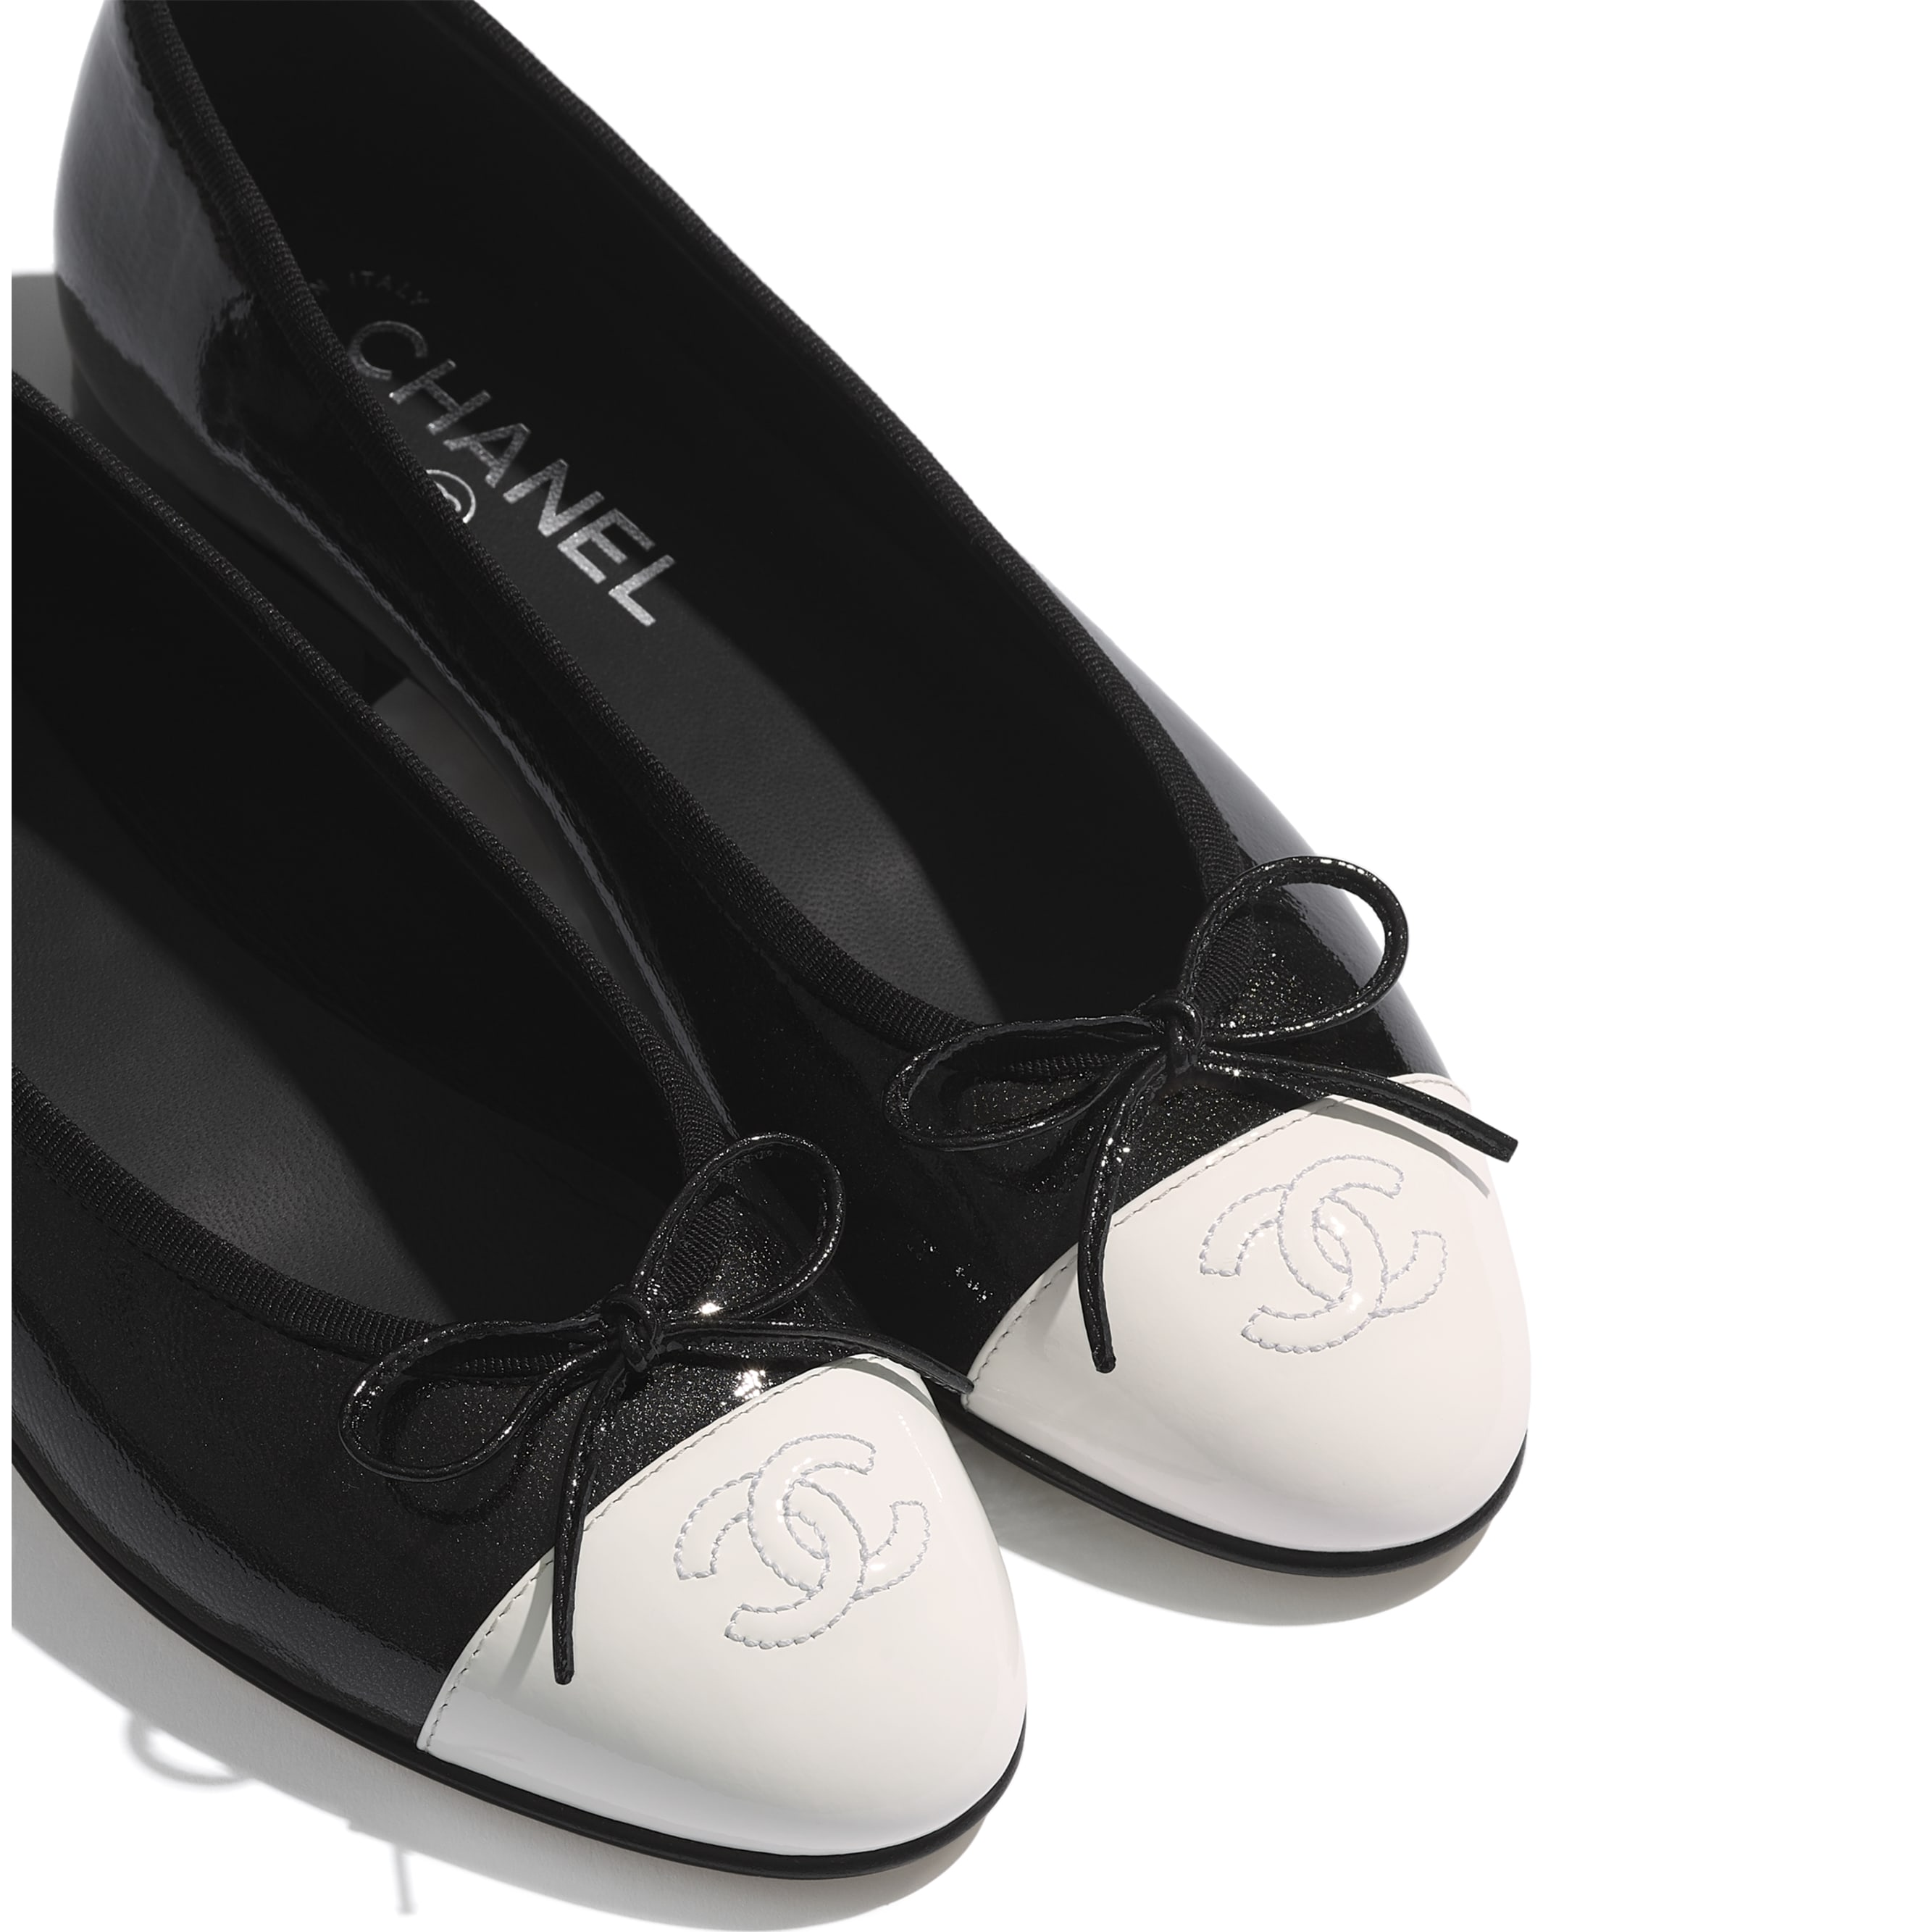 Flats - Black & White - Shiny Goatskin & Patent Calfskin - Extra view - see standard sized version